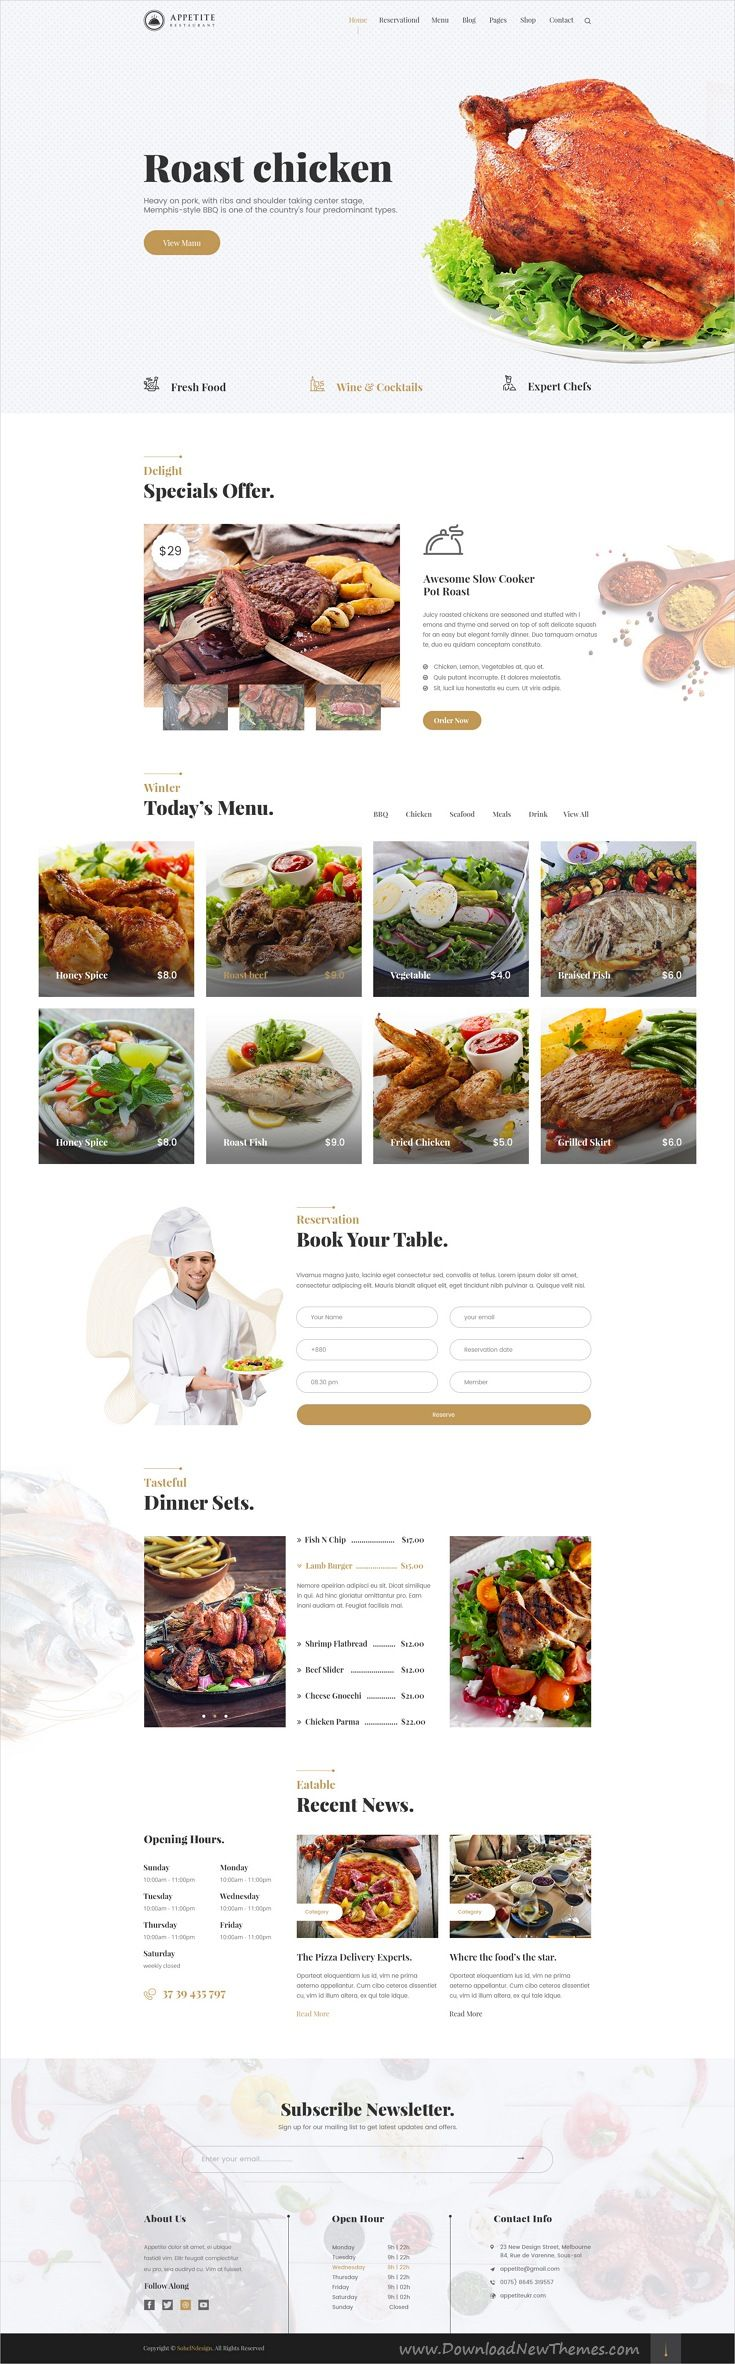 Appetite is clean and modern design PSD template for #restaurant and #cafe website with 24 layered PSD pages download now #webdevelopment